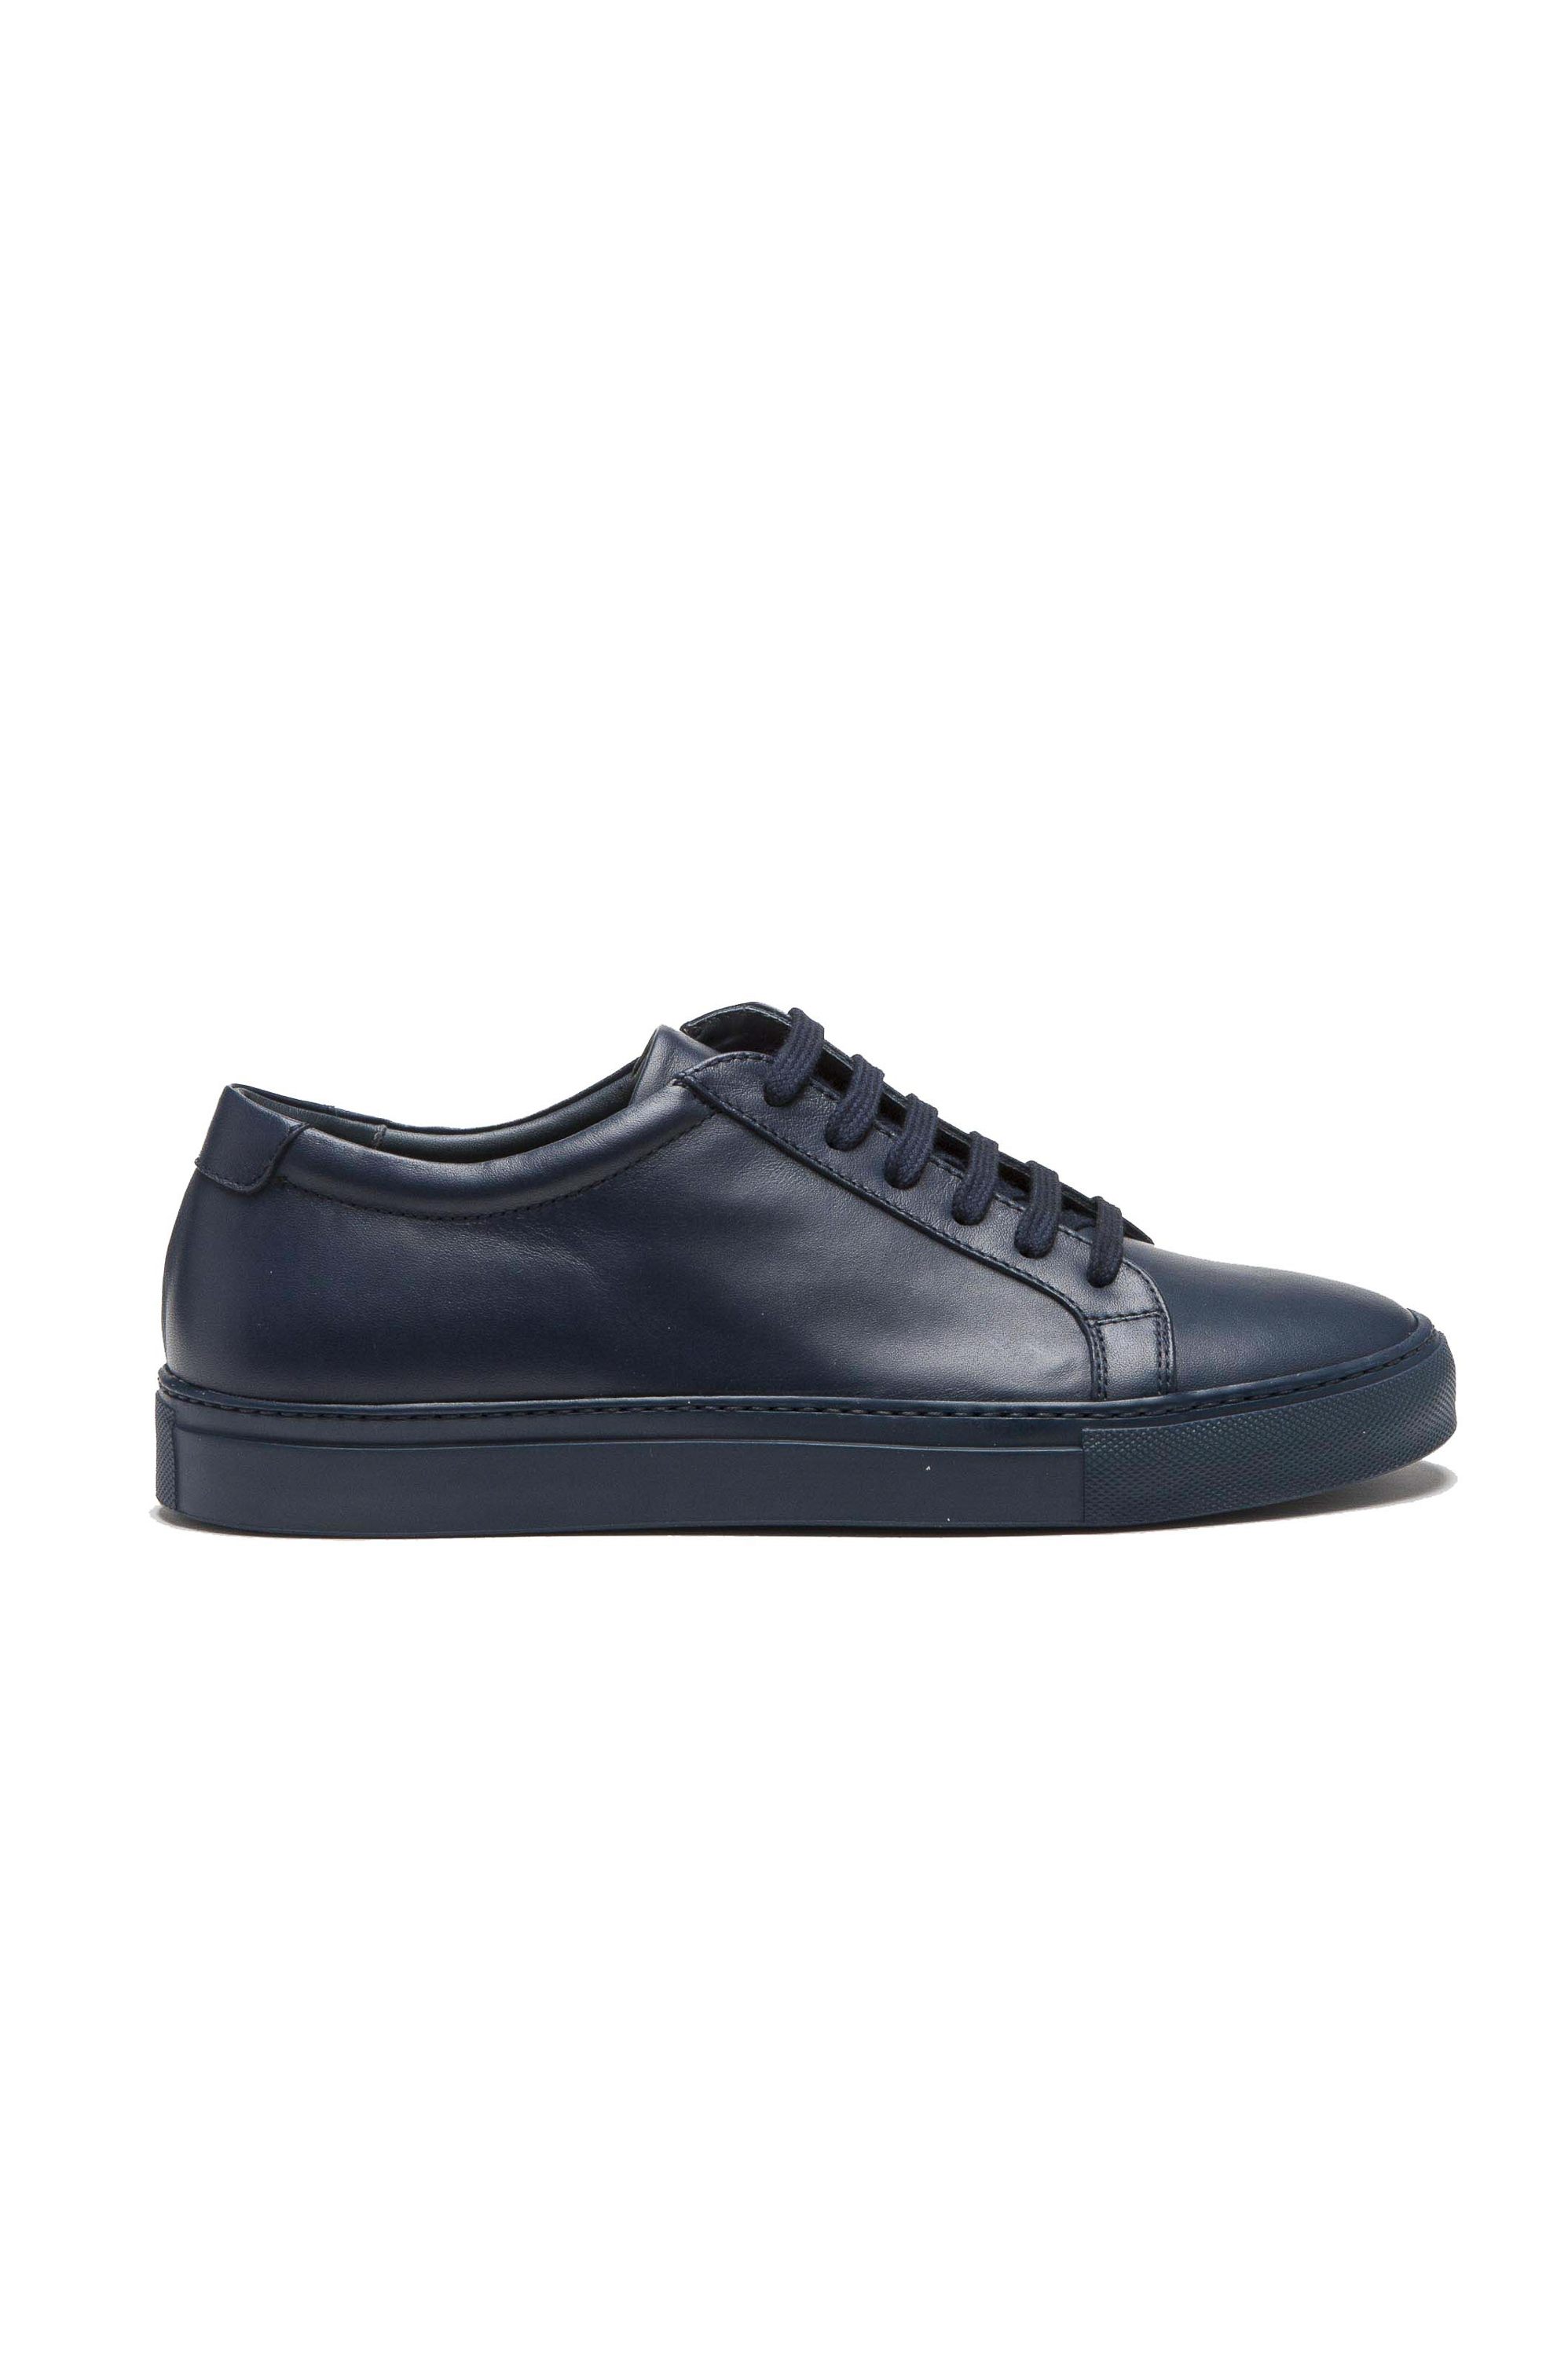 SBU 01525 Classic lace up sneakers in blue calfskin leather 01